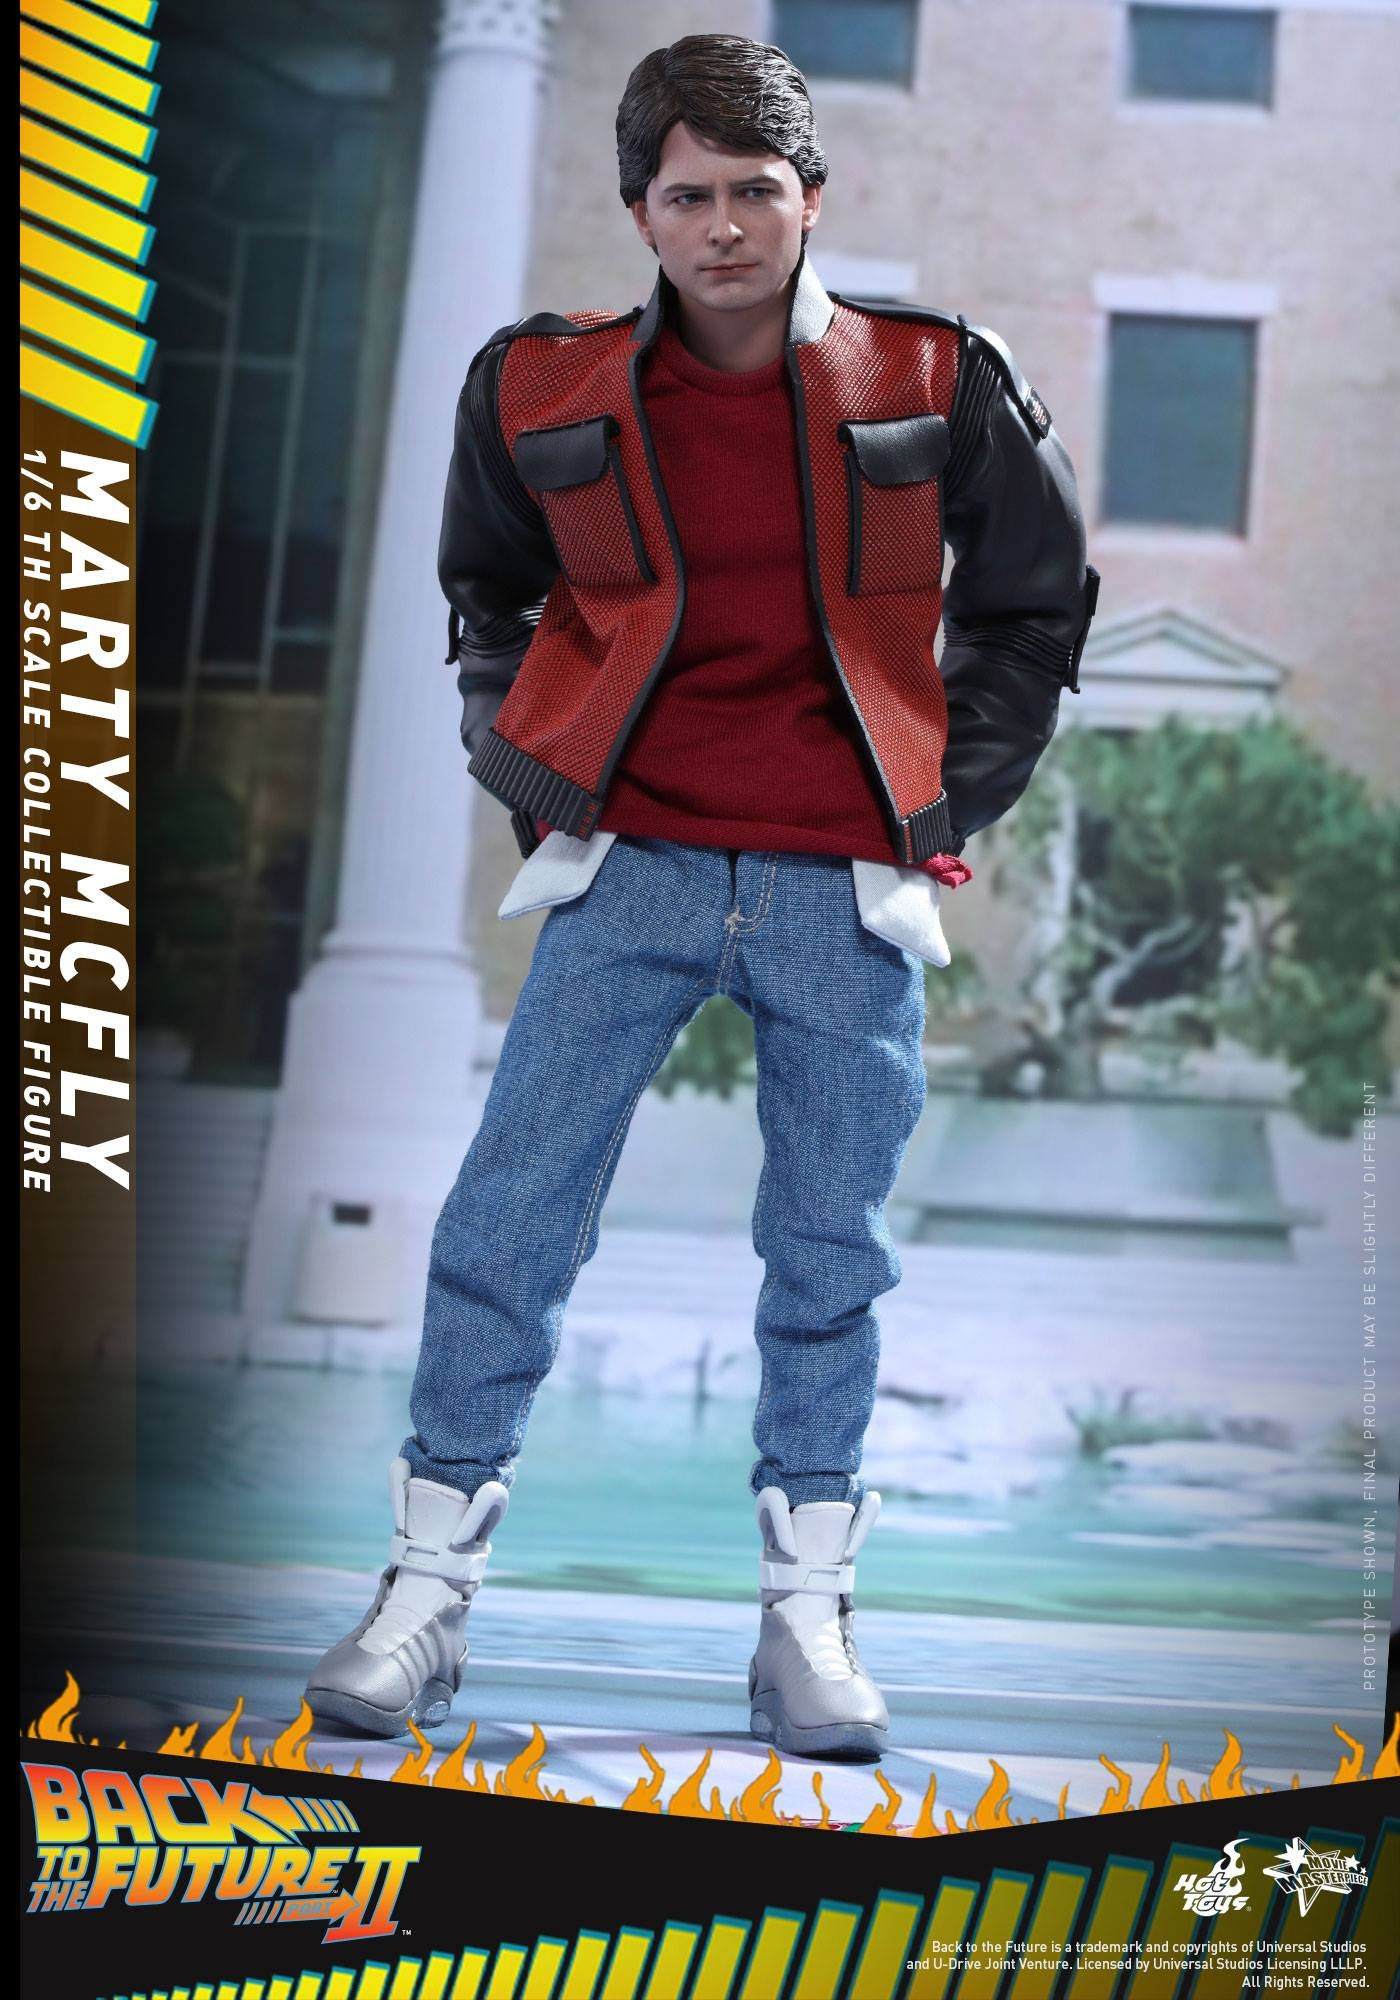 Hot Toys - MMS379 - Back to The Future Part II - Marty McFly (Normal Edition) - Marvelous Toys - 17